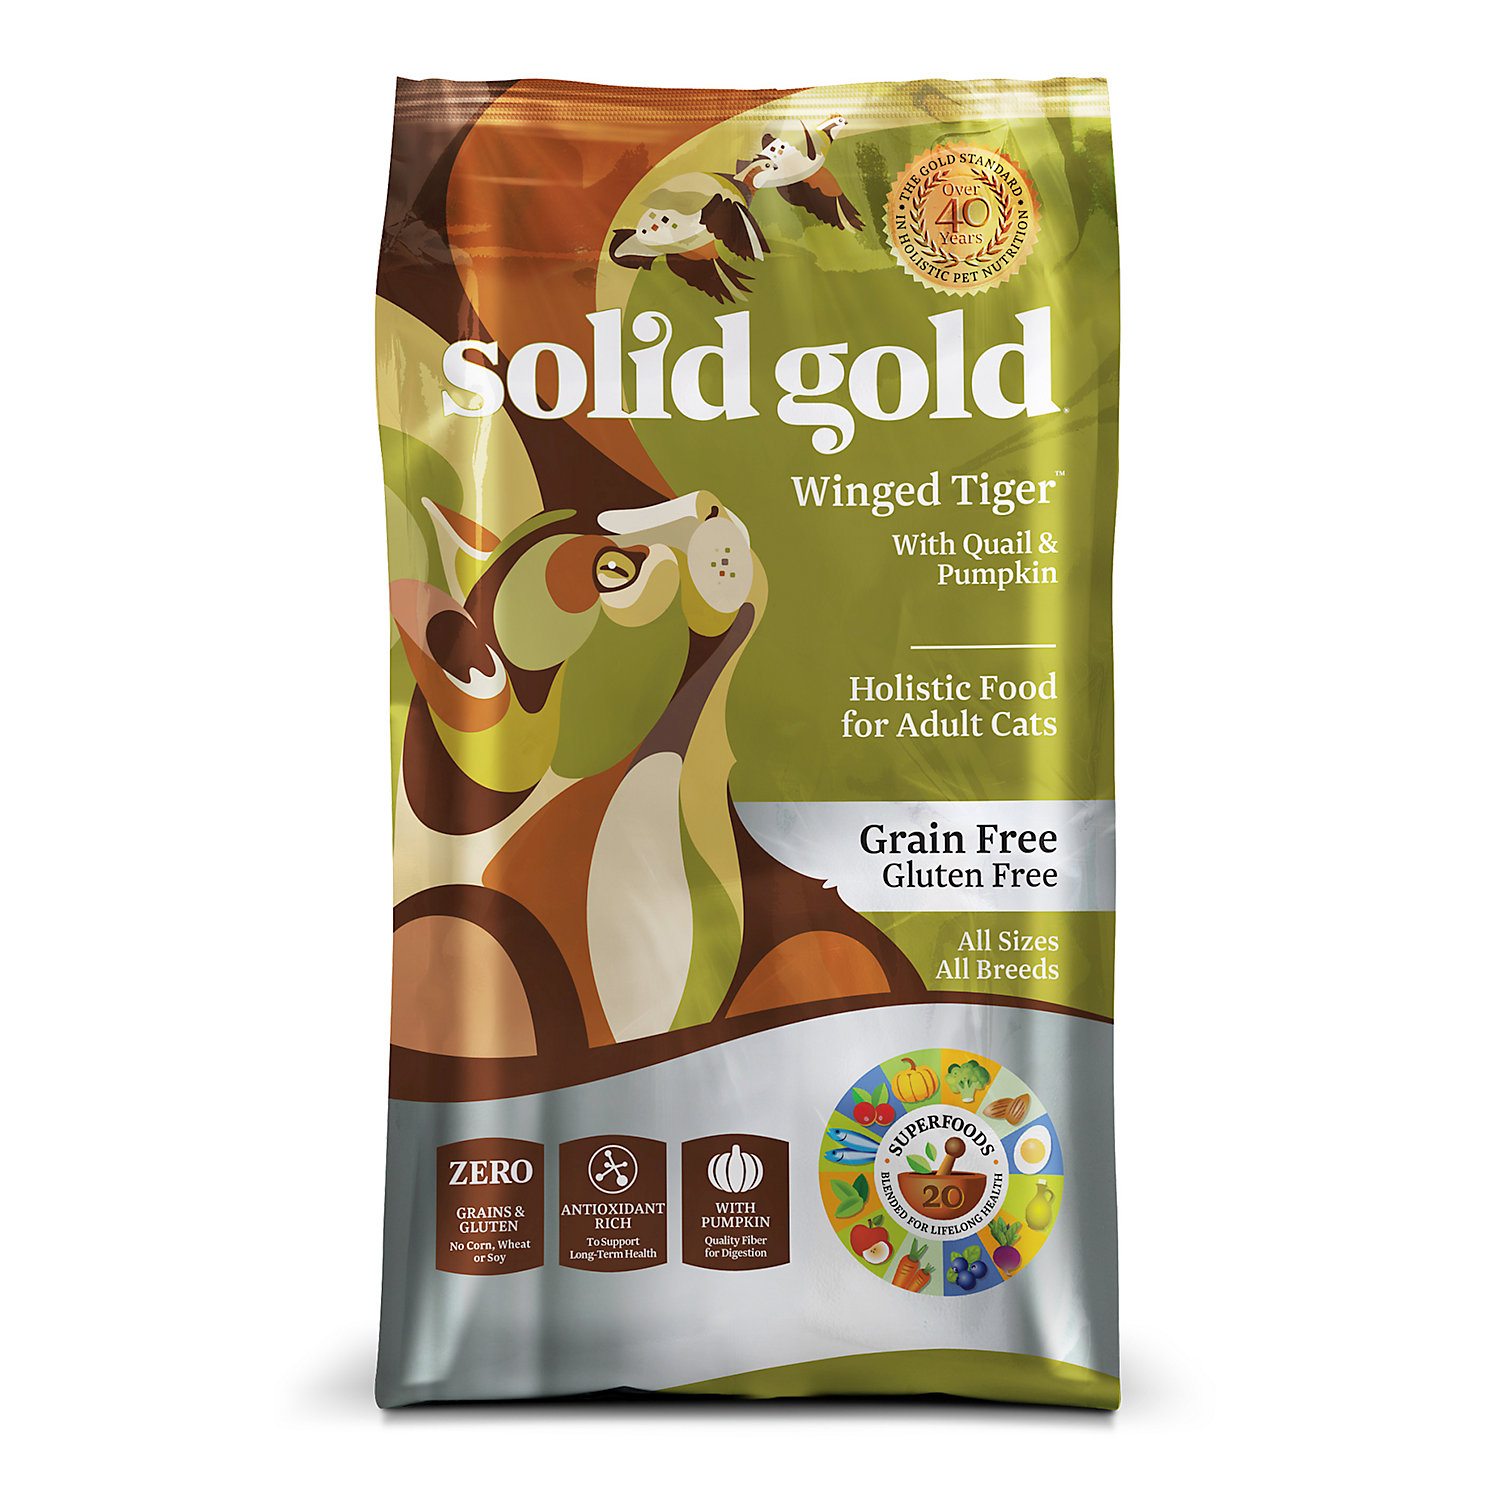 Solid Gold Winged Tiger Quail & Pumpkin Adult Dry Cat Food,